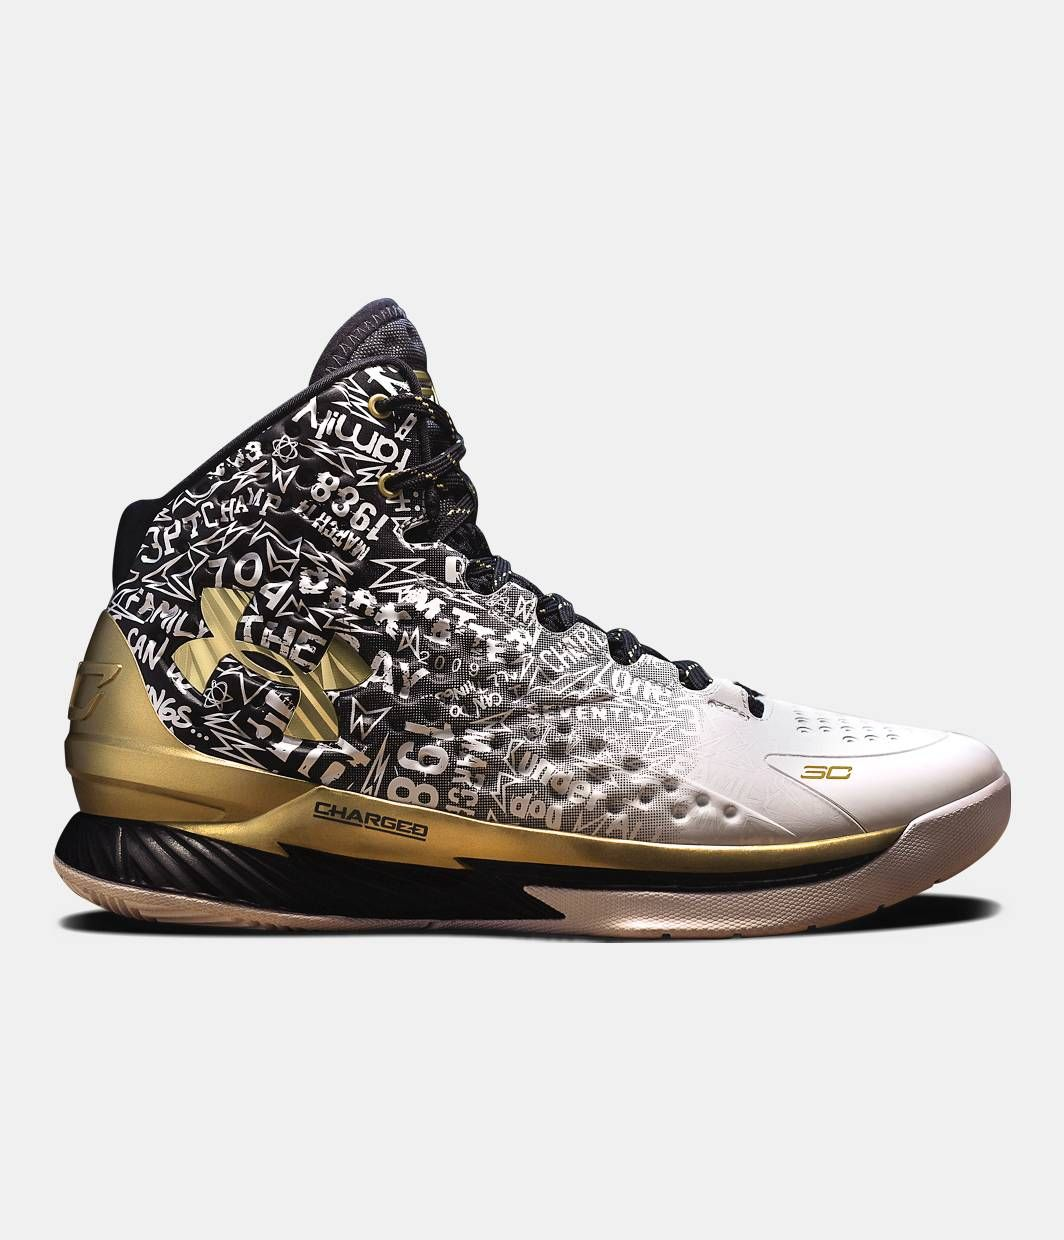 c8dcd77a7bb4 Shop Under Armour for Men s UA Curry BACK 2 BACK MVP Pack  Ships 6 24 16   in our Mens Sneakers department. Free shipping is available in US.